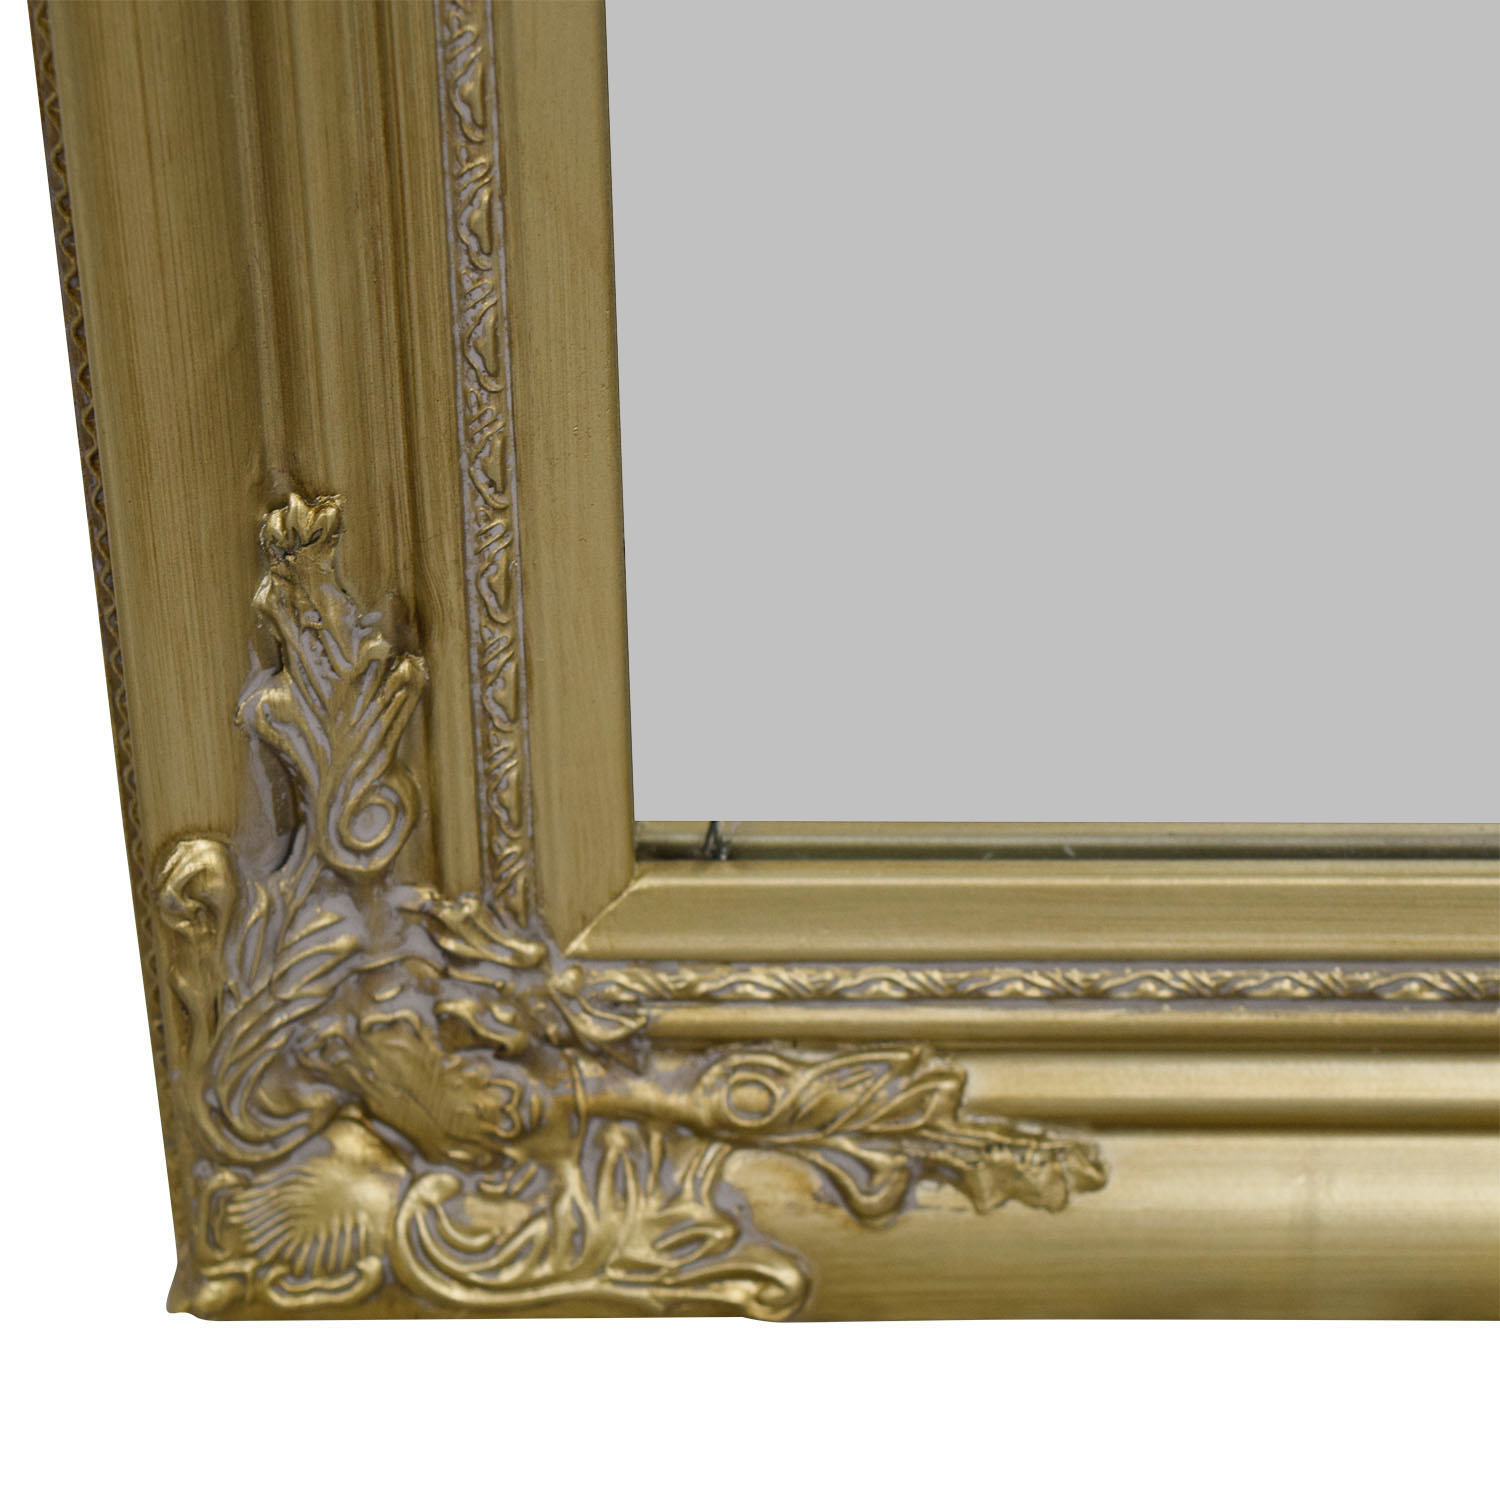 shop Full Length Ornate Gold Mirror Mirrors